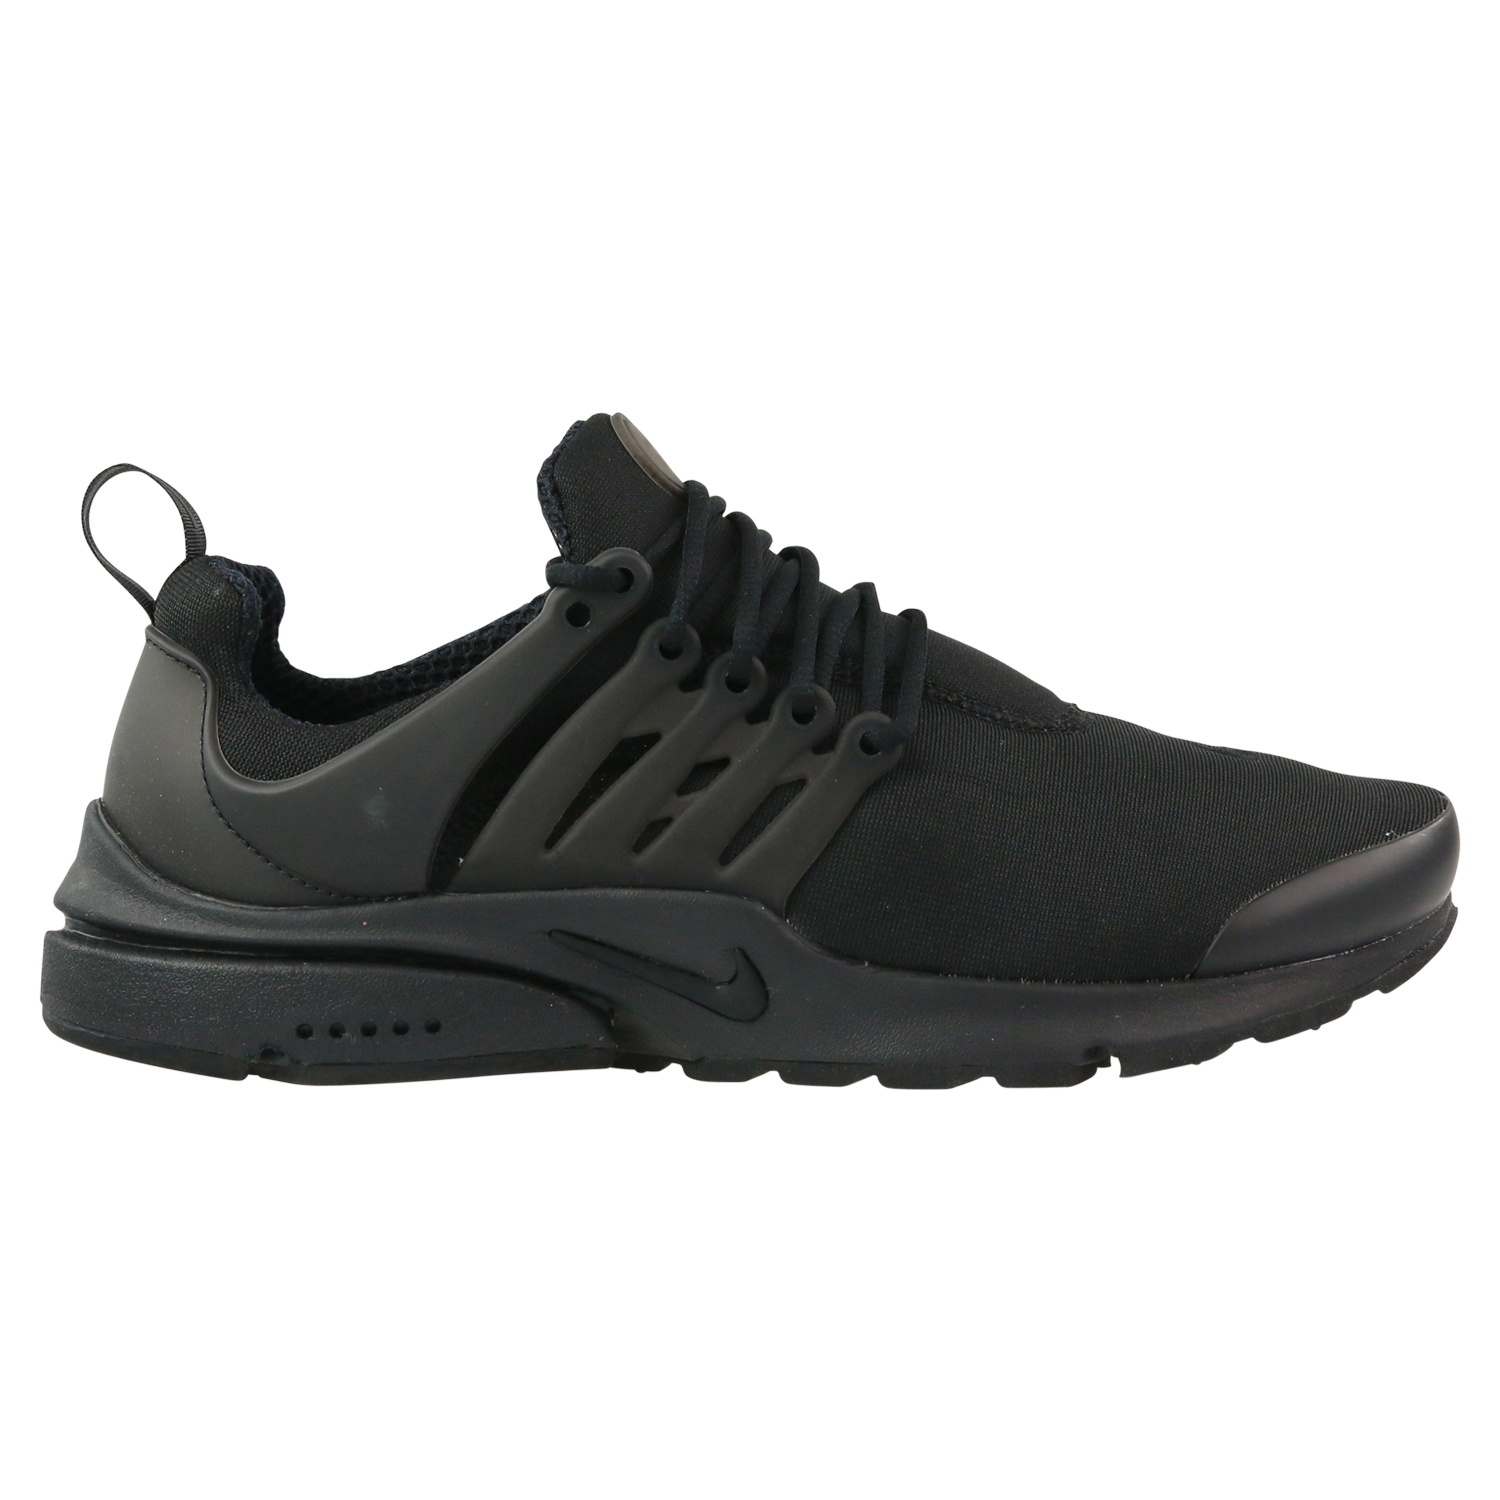 nike air presto essential herren sneaker schuhe turnschuhe. Black Bedroom Furniture Sets. Home Design Ideas